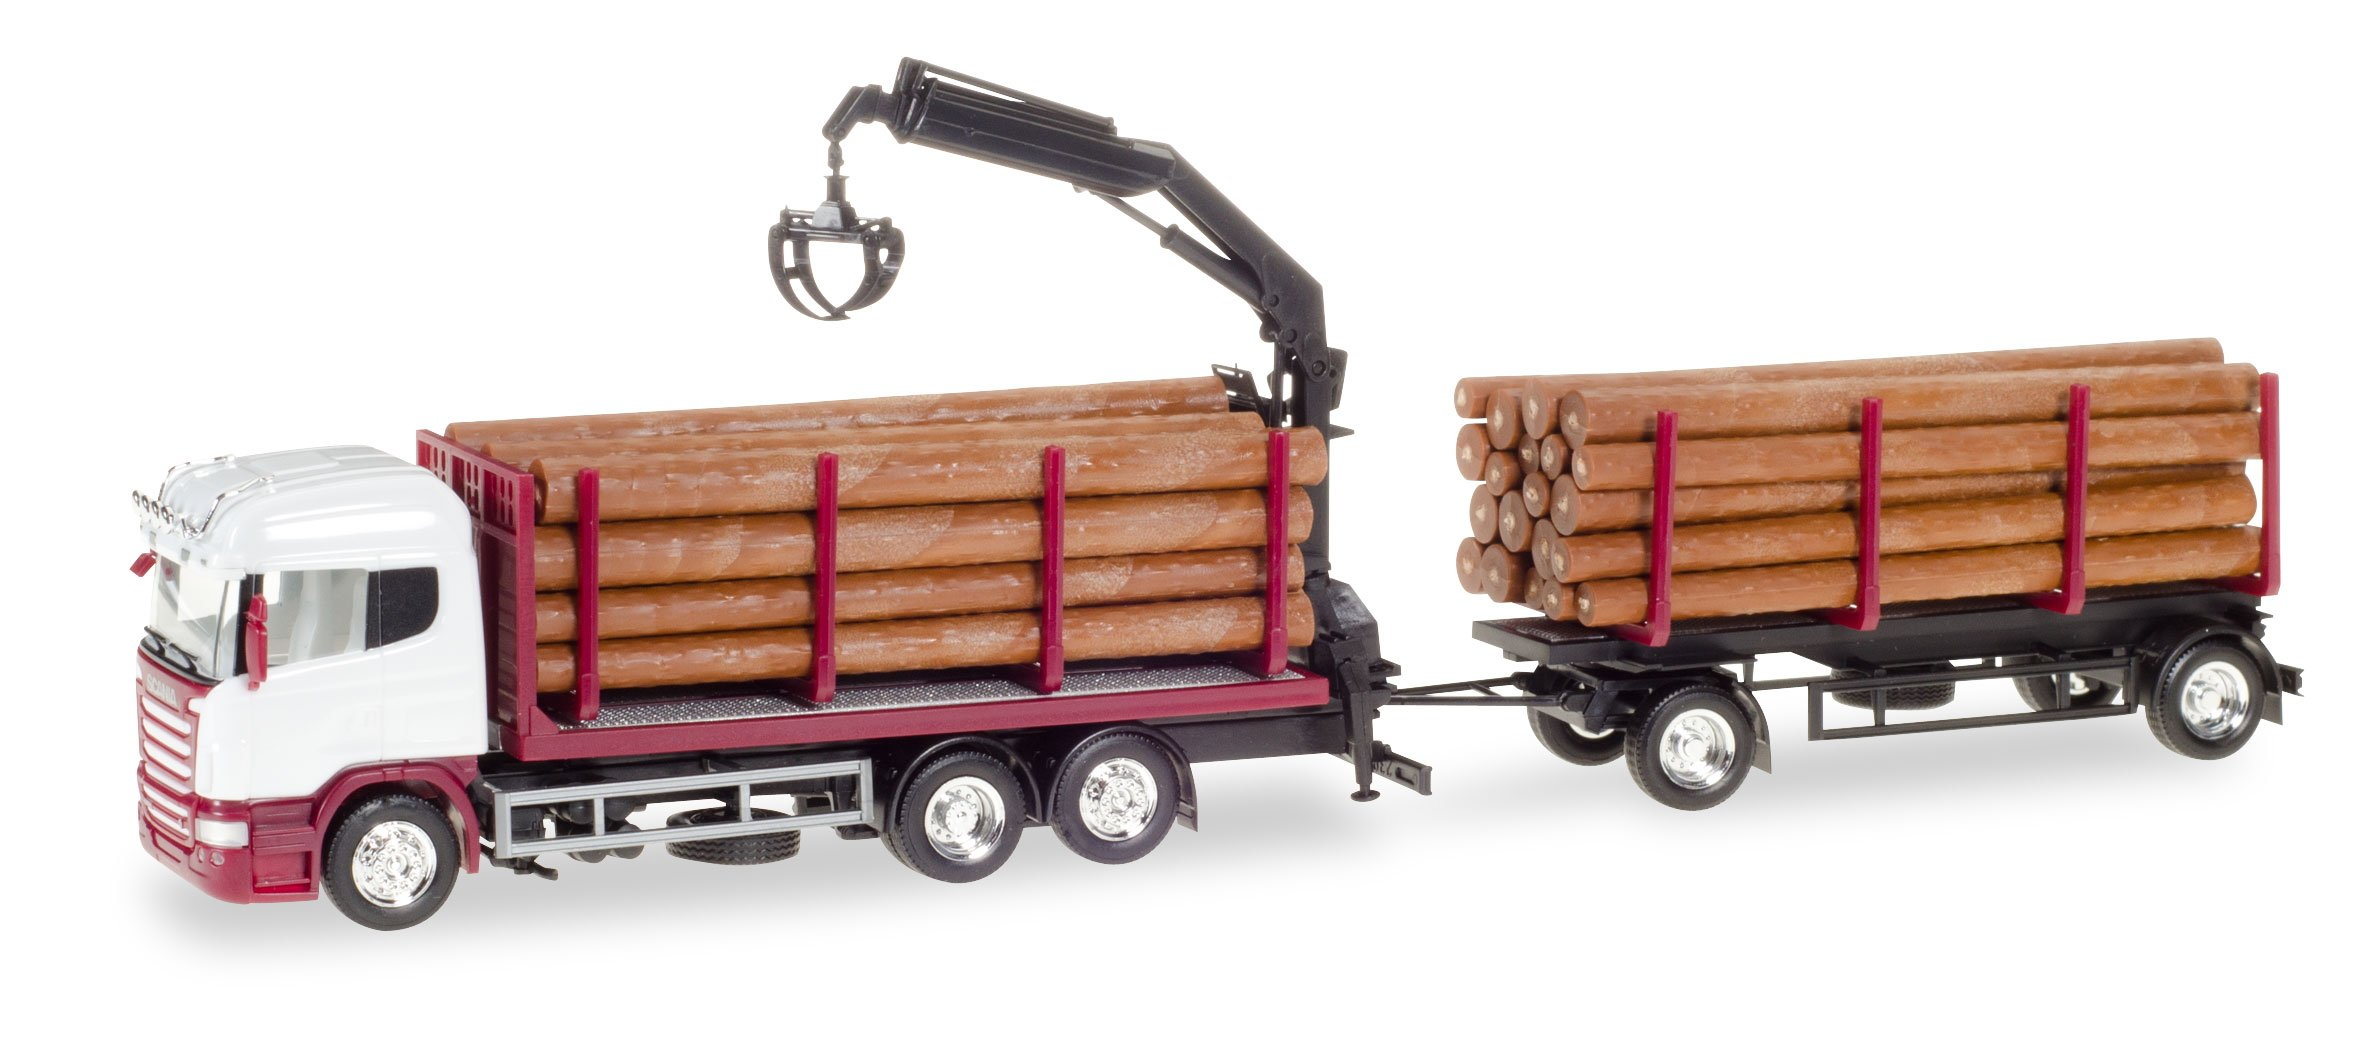 HERPA 307383 ''Scania R Hl Wood Carrier Unprinted Model Set